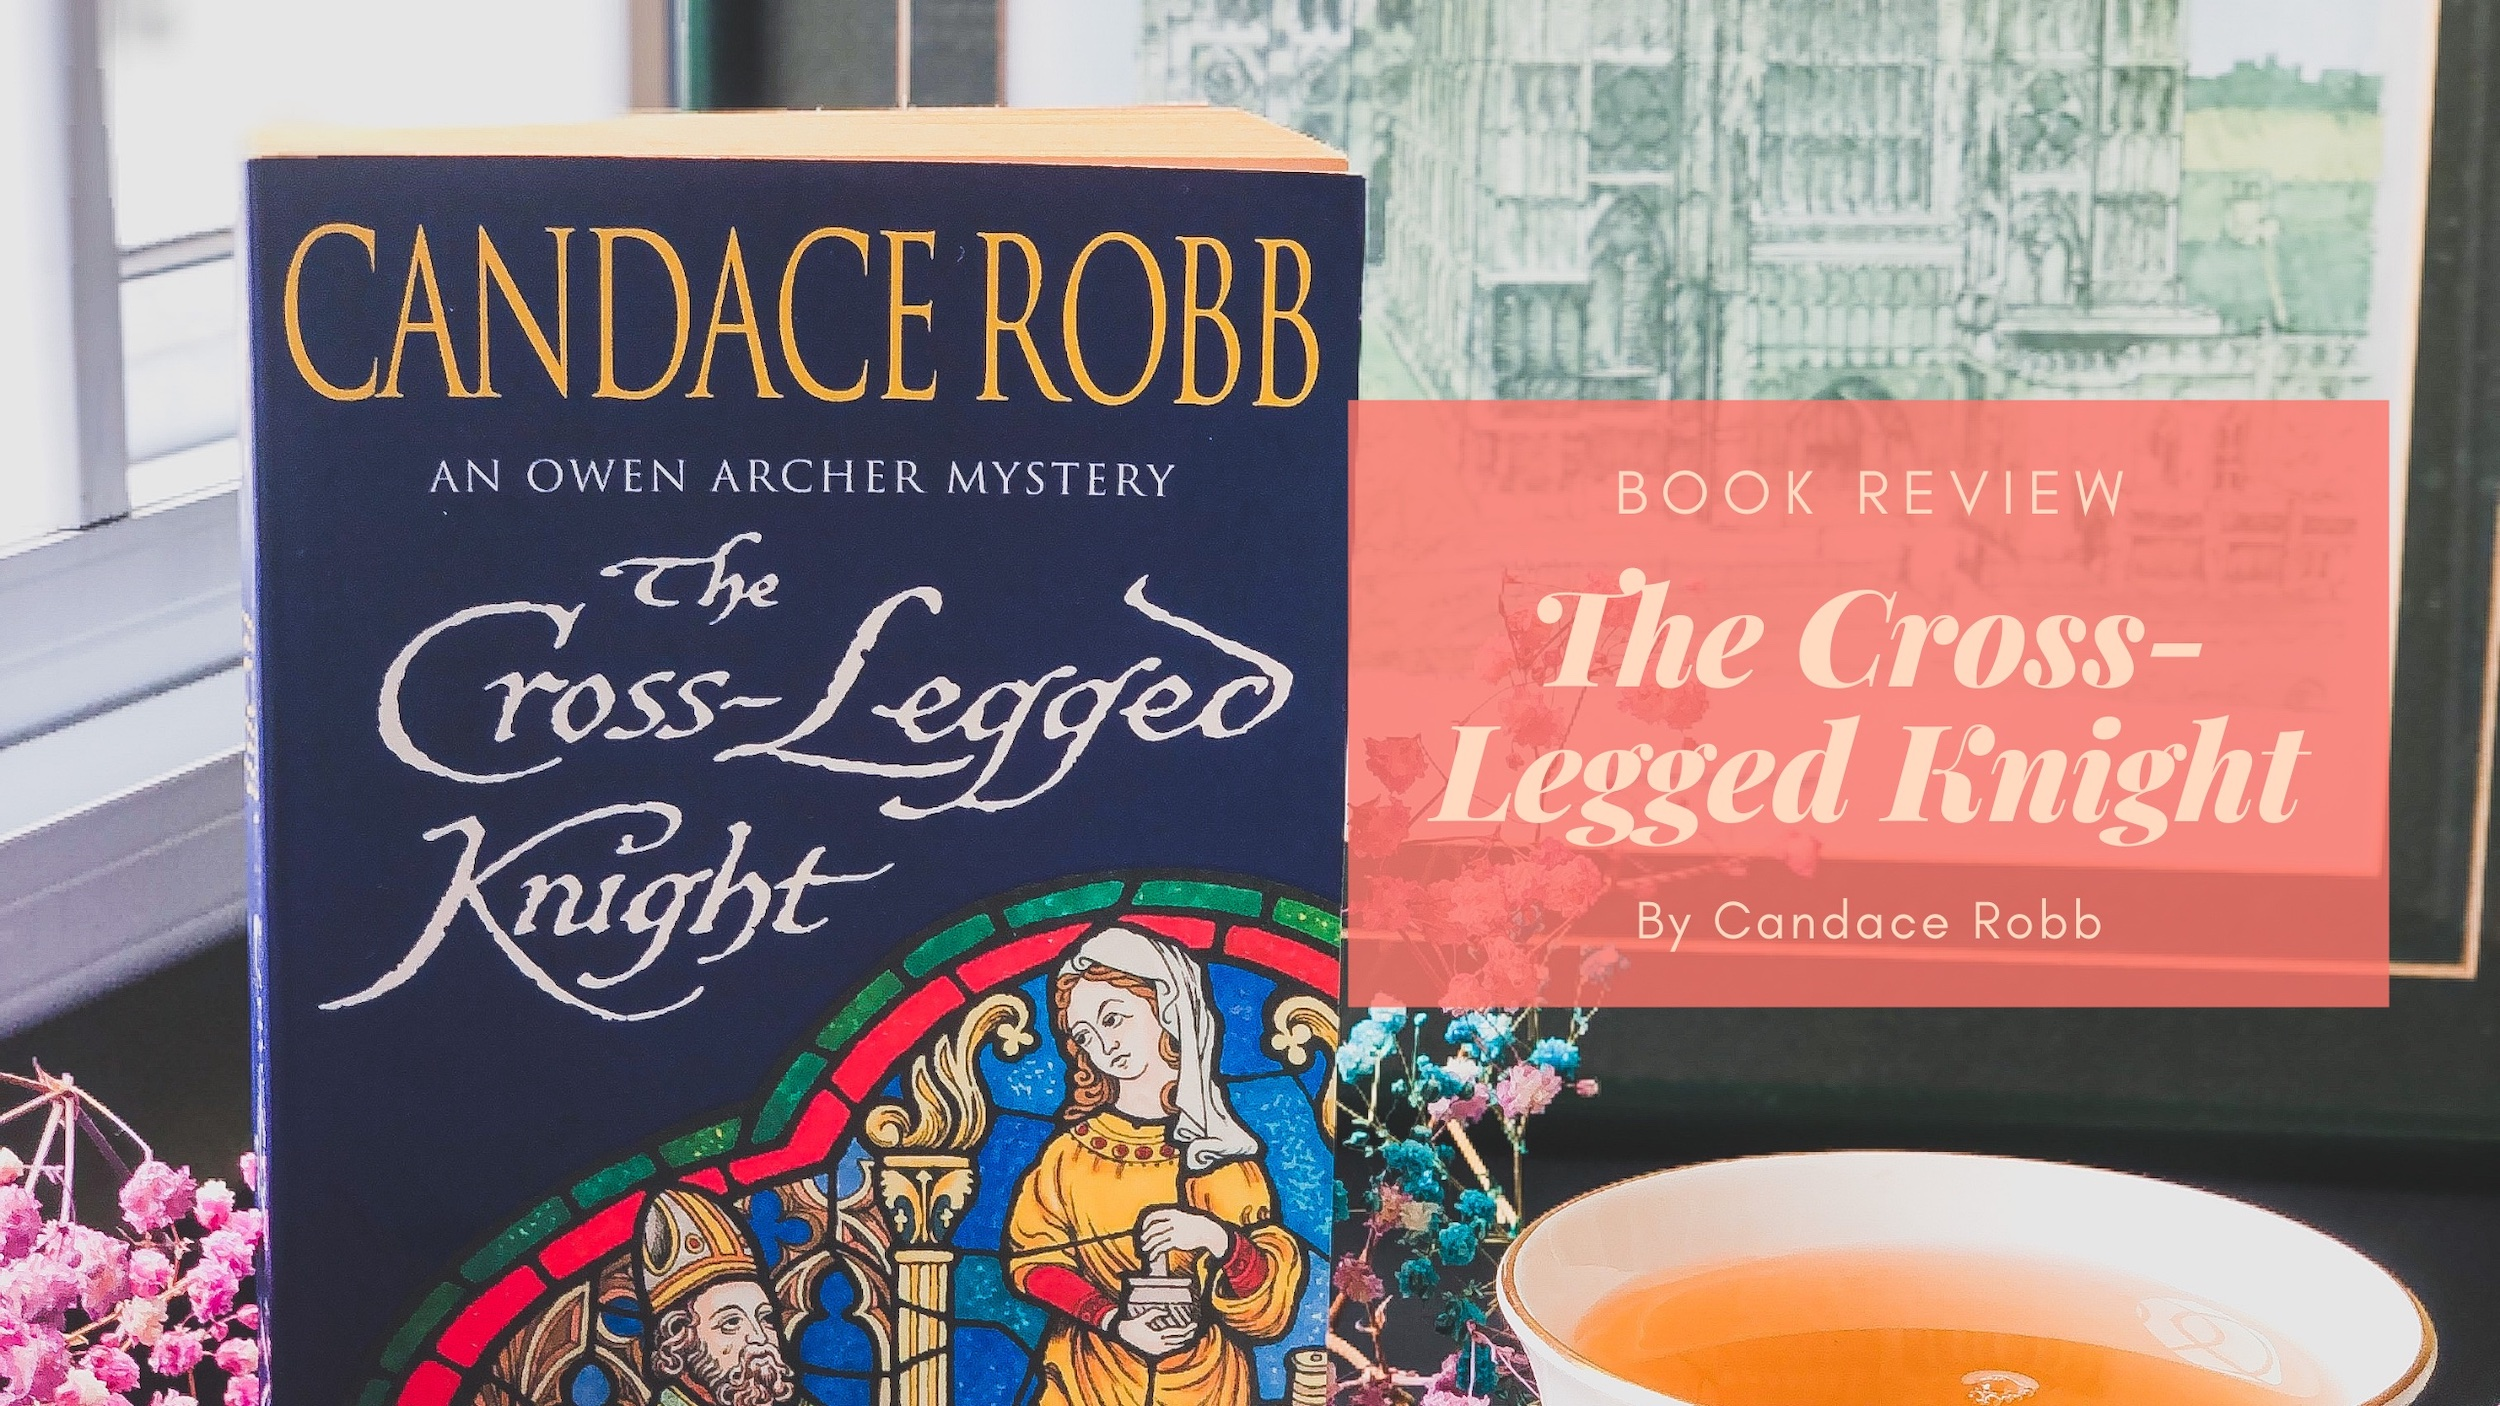 Book Review: The Cross-Legged Knight by Candace Robb